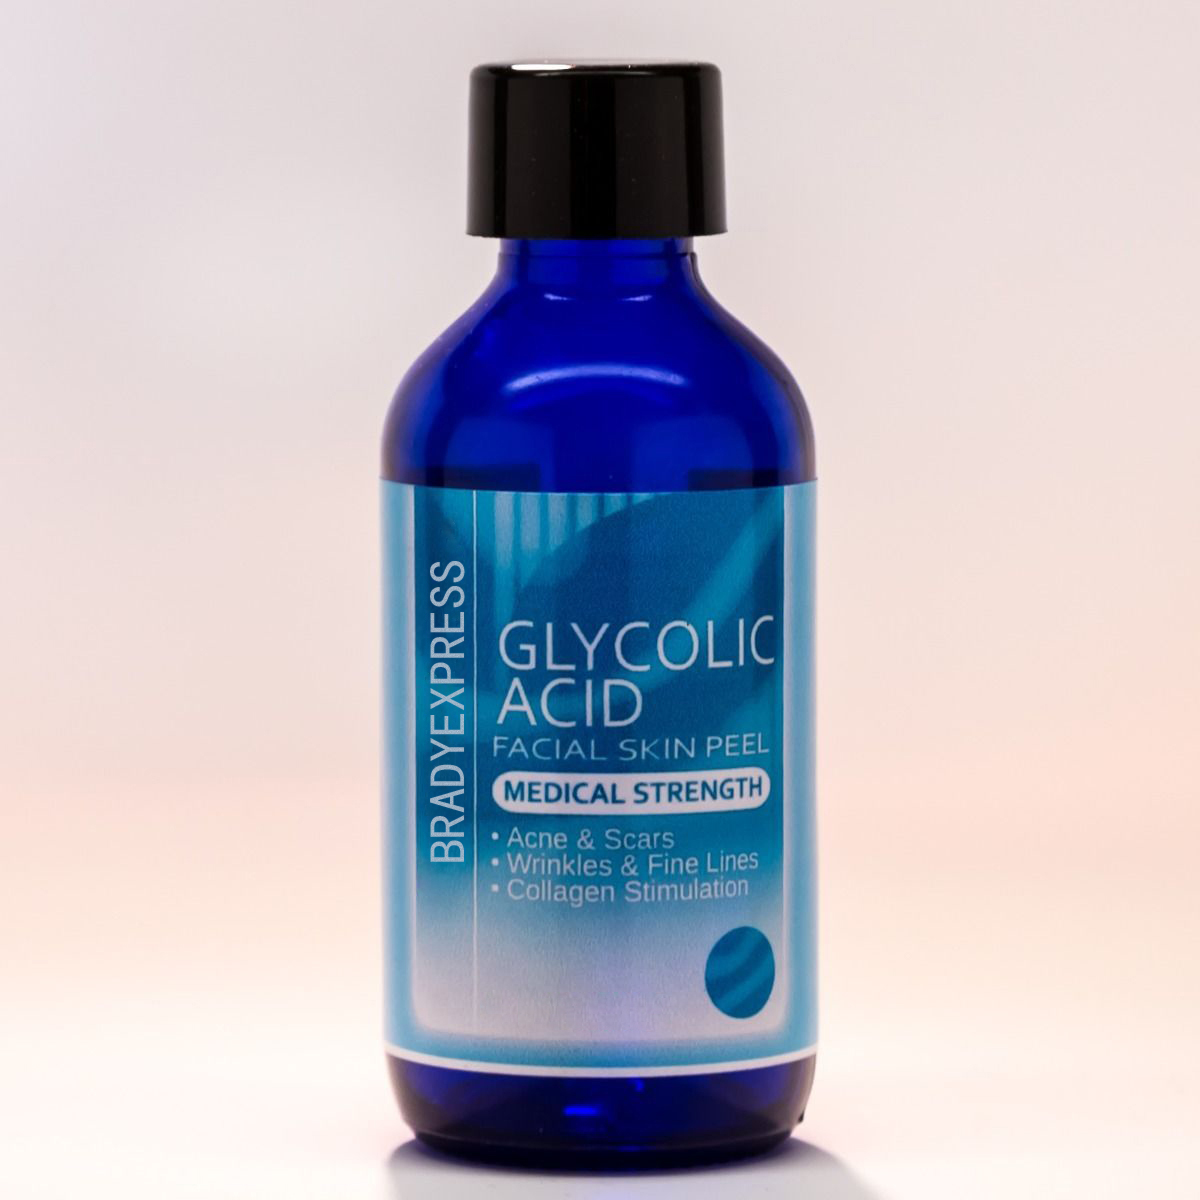 NEW 35% GLYCOLIC ACID Chemical Peel Kit Medical Grade 100% Pure! Acne Scars Wrinkles FREE SHIPPING